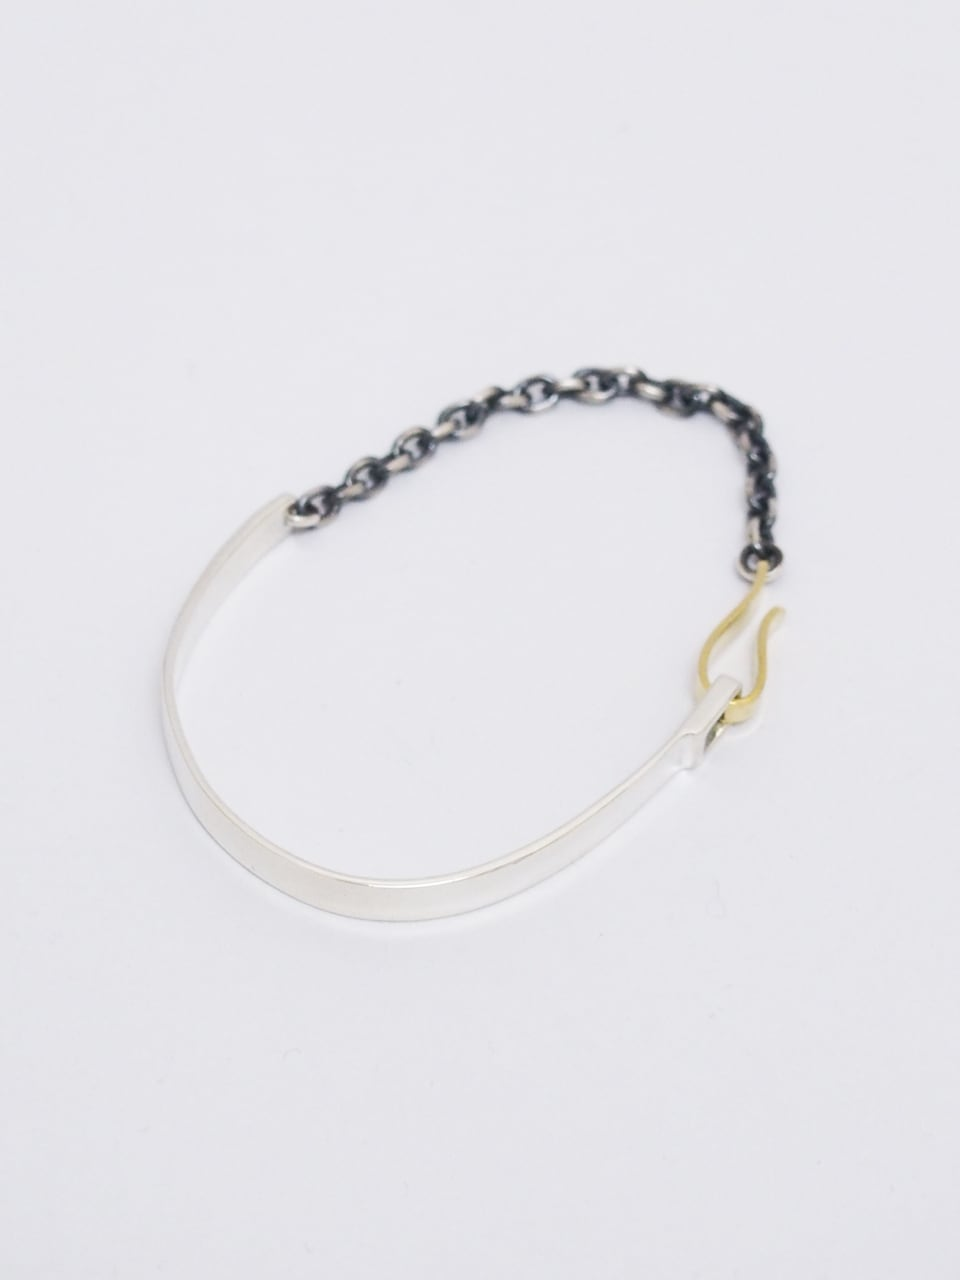 EGO TRIPPING (エゴトリッピング) LINK BANGLE / SILVER 693655-98